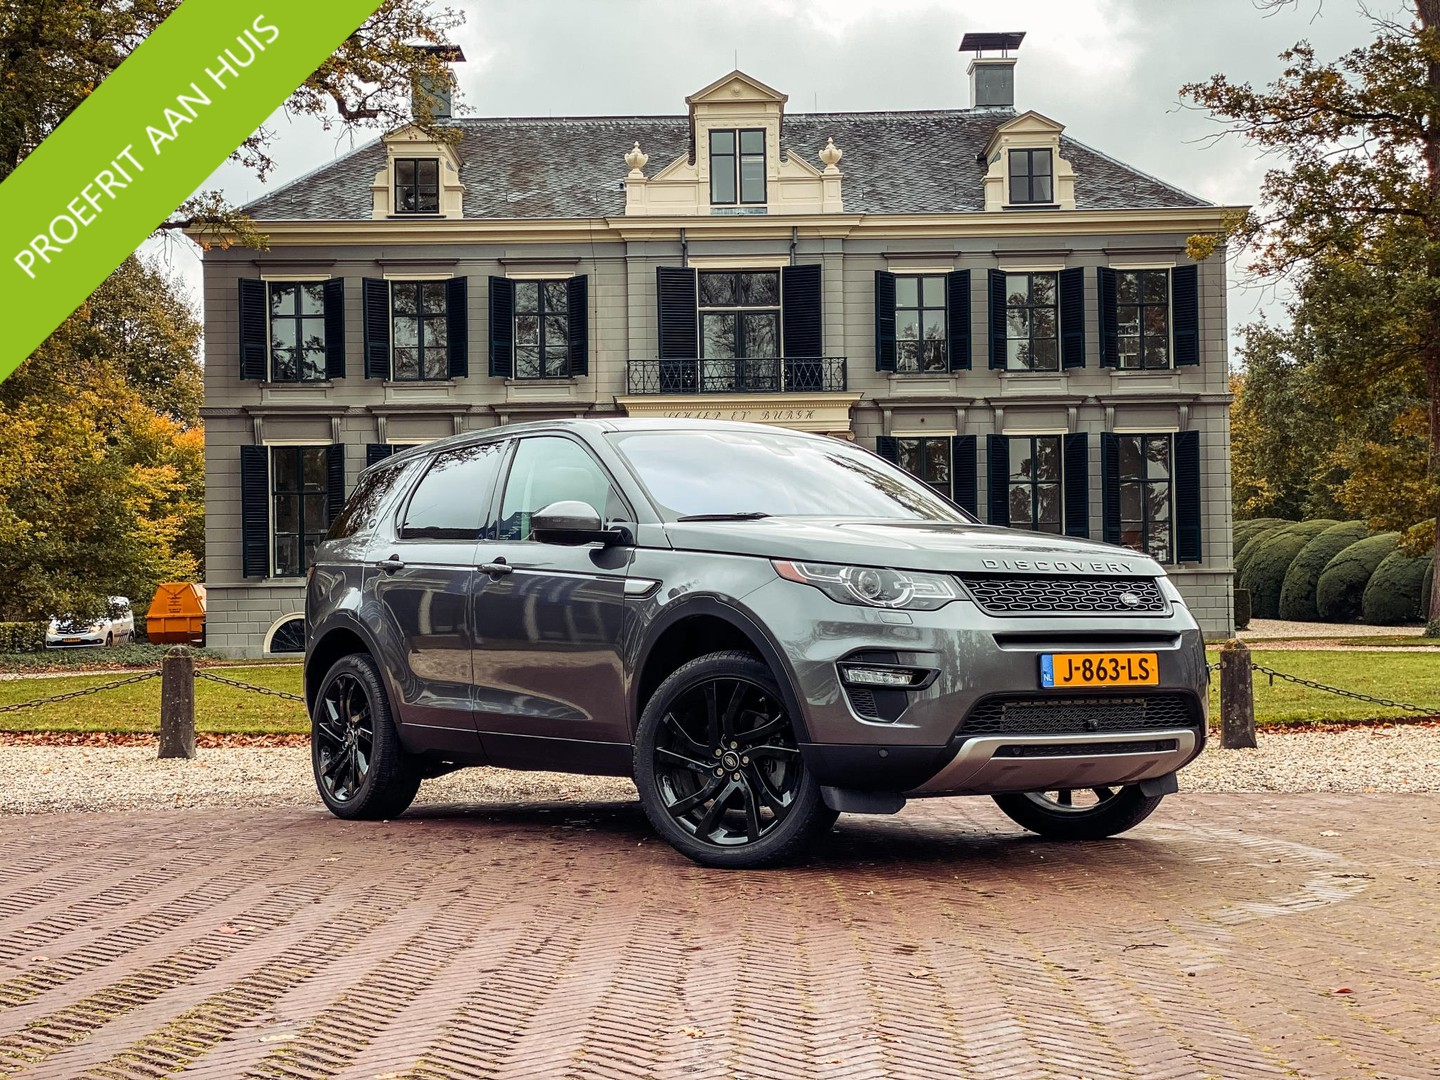 Land rover Discovery sport 2.0 si4 hse 7p. automaat/ trekhaak/ leder/ panoramadak/ 7 persoons uniek!